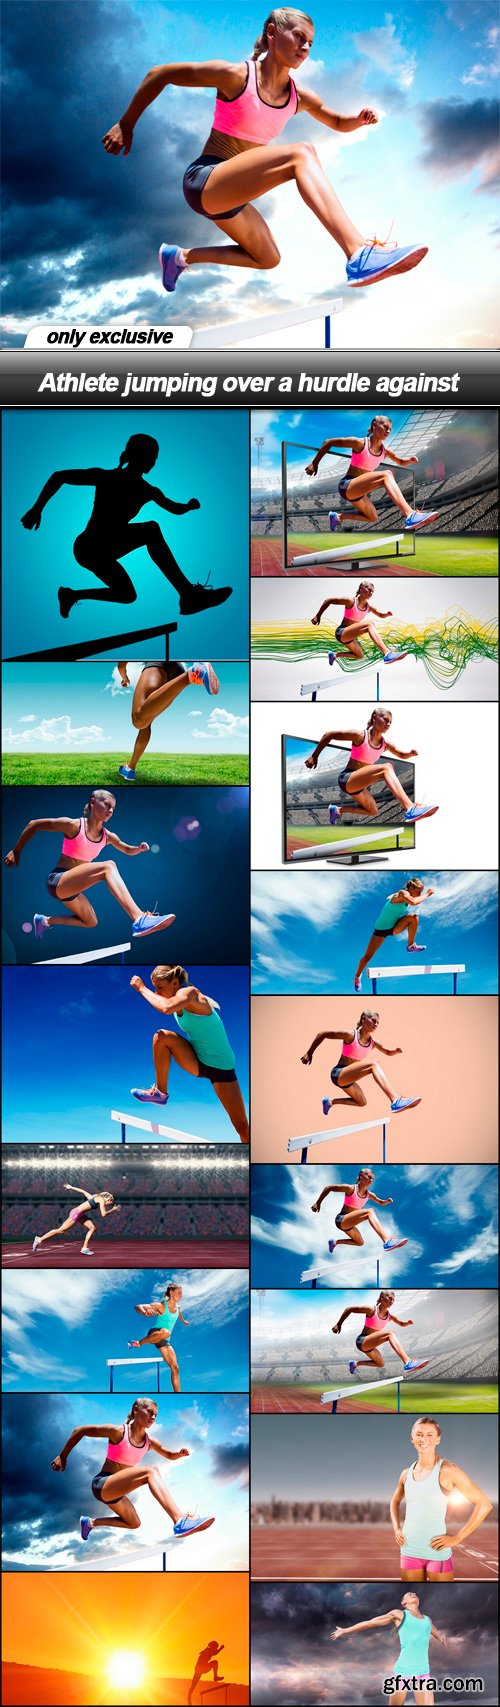 Athlete jumping over a hurdle against - 17 UHQ JPEG